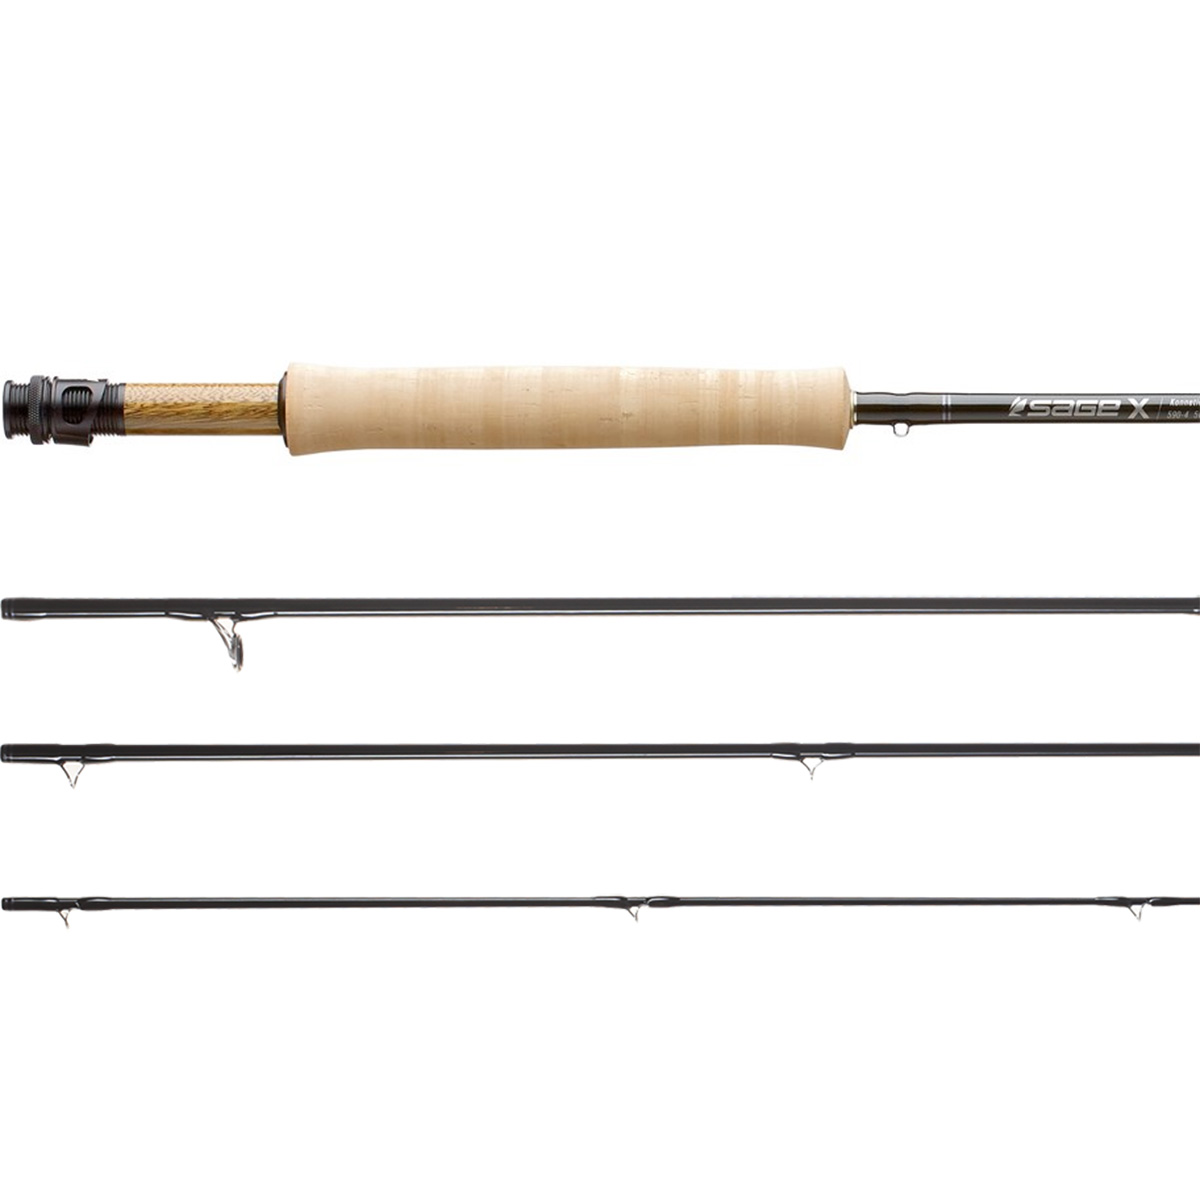 Sage x rod fly fishing rods for How many fishing rods per person in texas